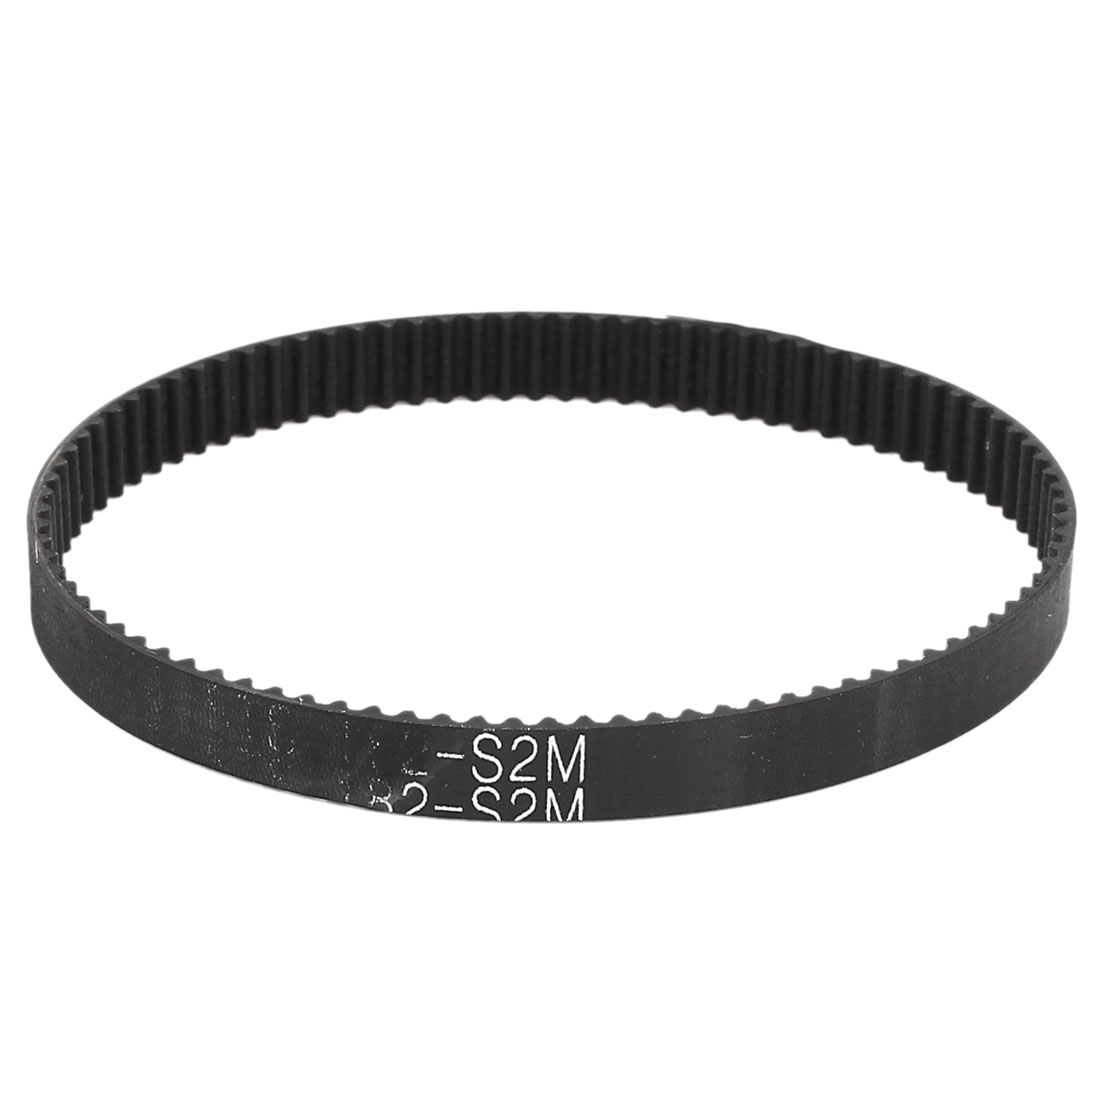 Table Saw S2M-182 91 Teeth 2mm Pitch 6mm Width Rubber Timing Belt Black